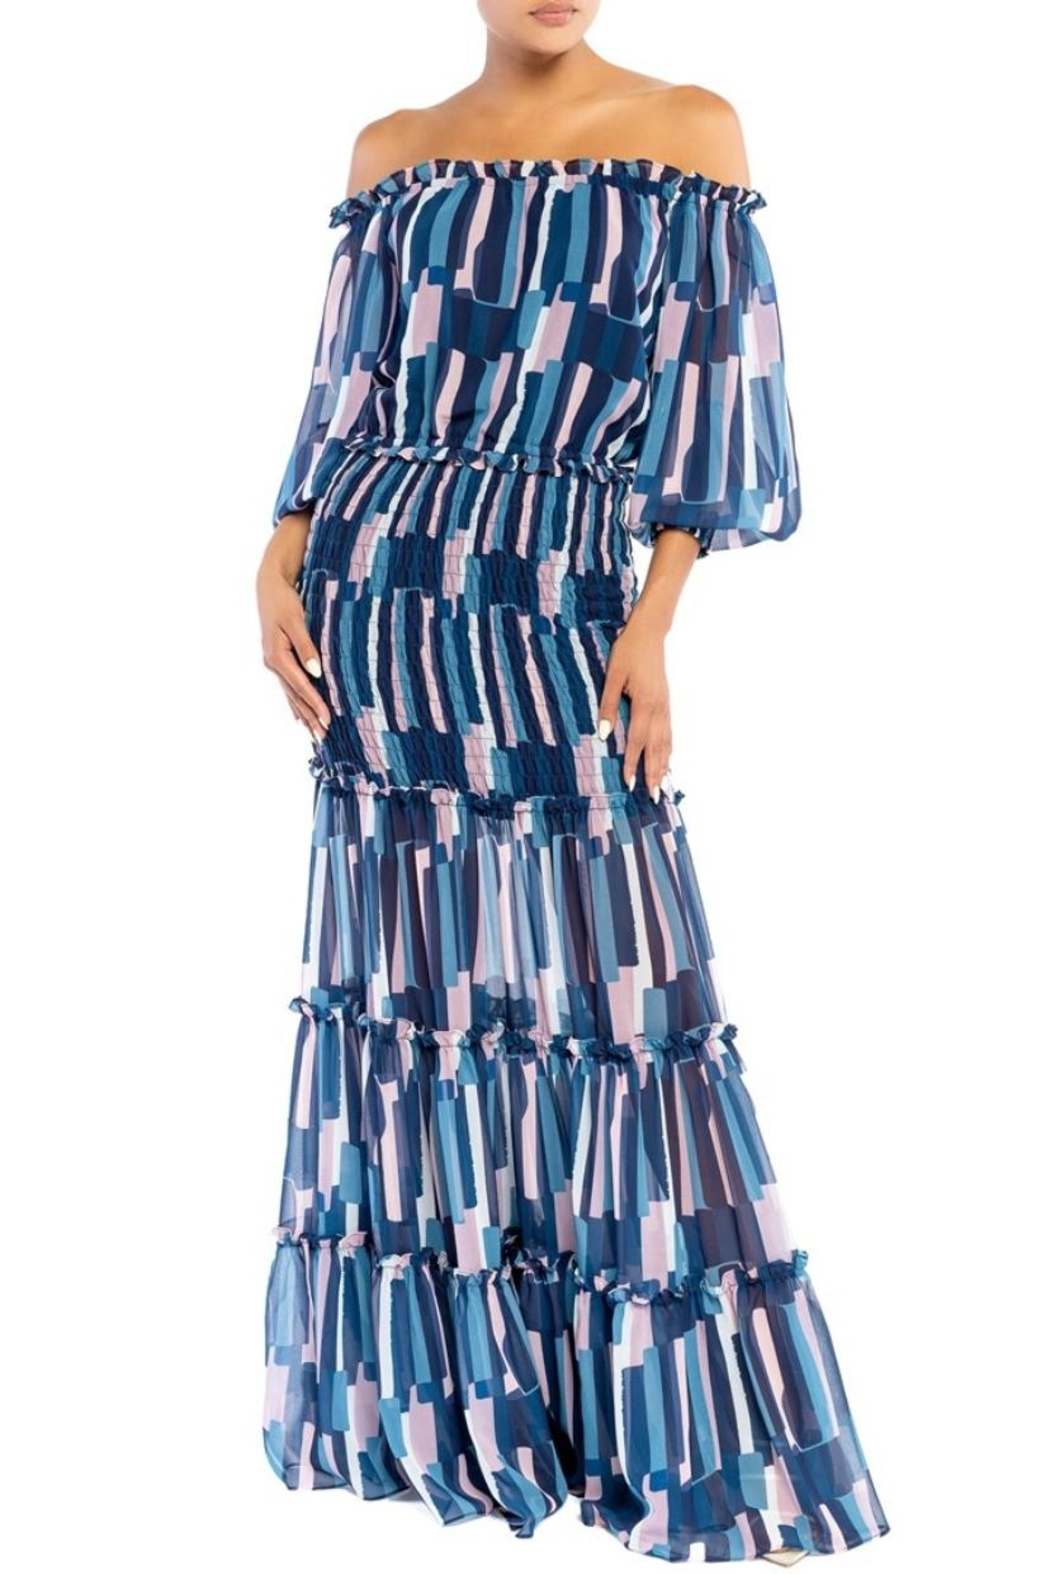 luxxel Off-Shoulder Striped Maxi - Main Image